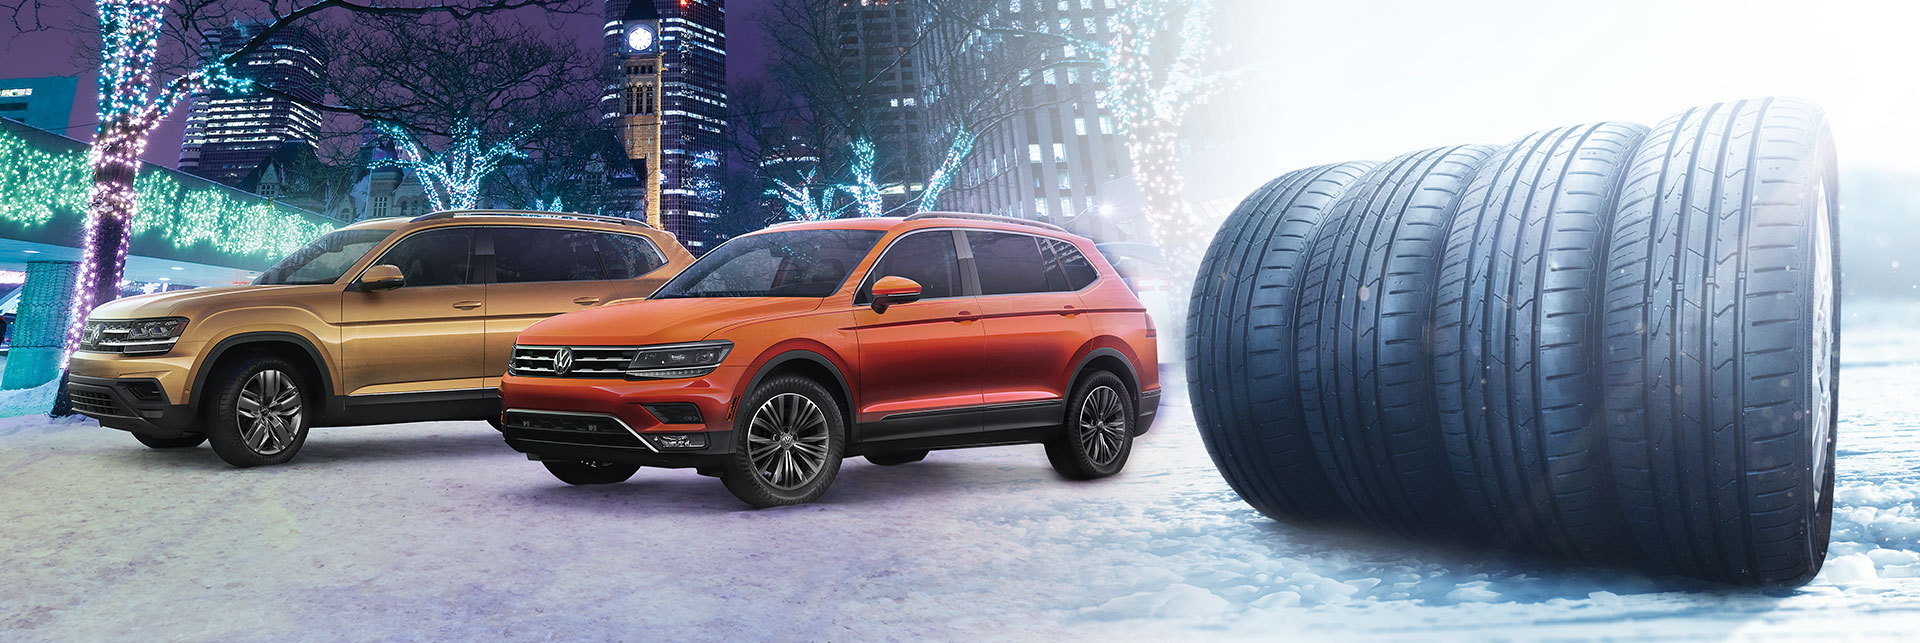 winter tires snow tire packages Chatham Volkswagen